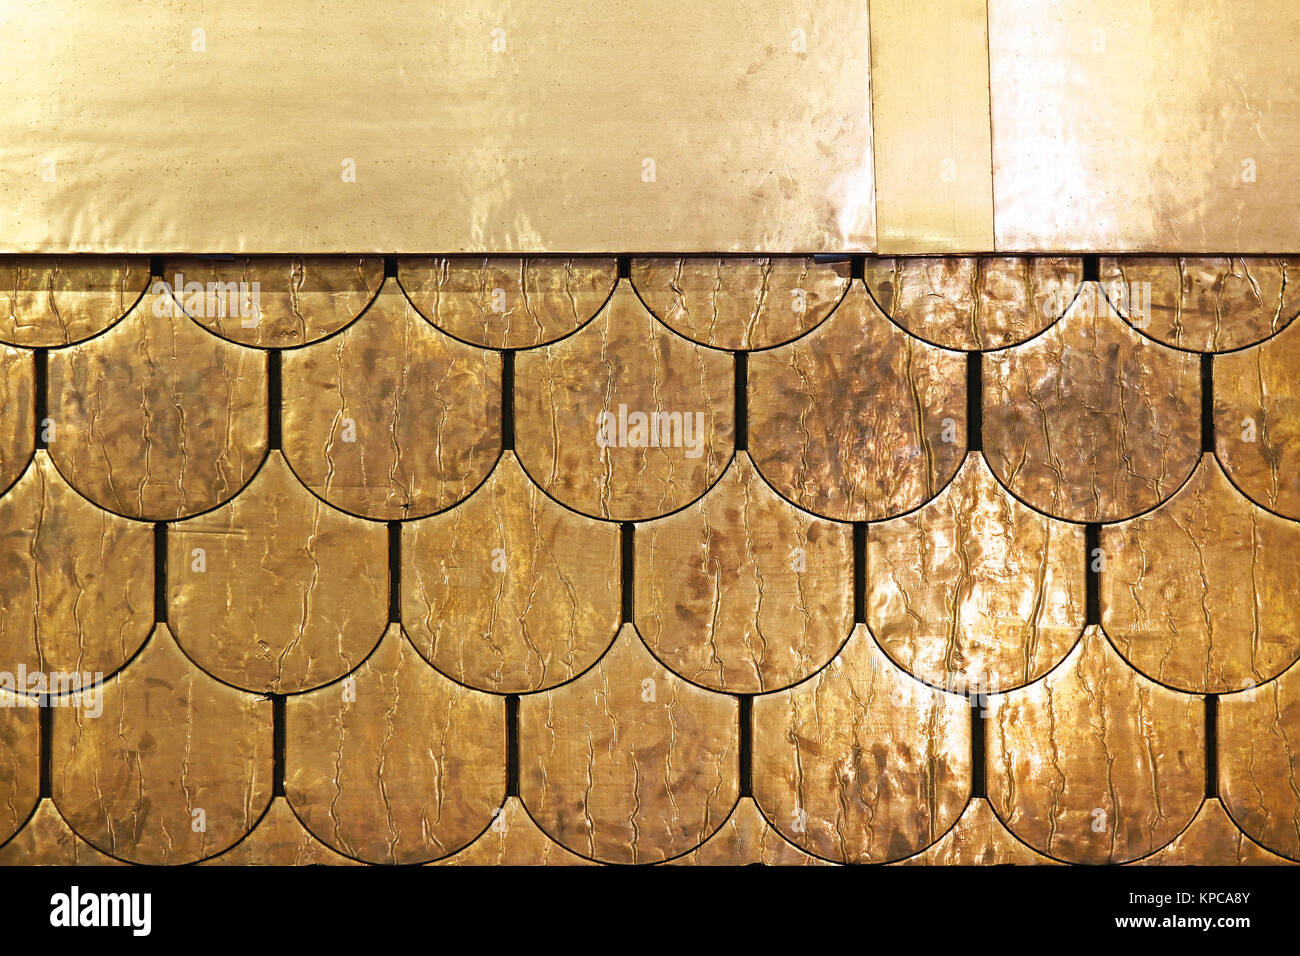 Copper Roofing Stock Photos Amp Copper Roofing Stock Images